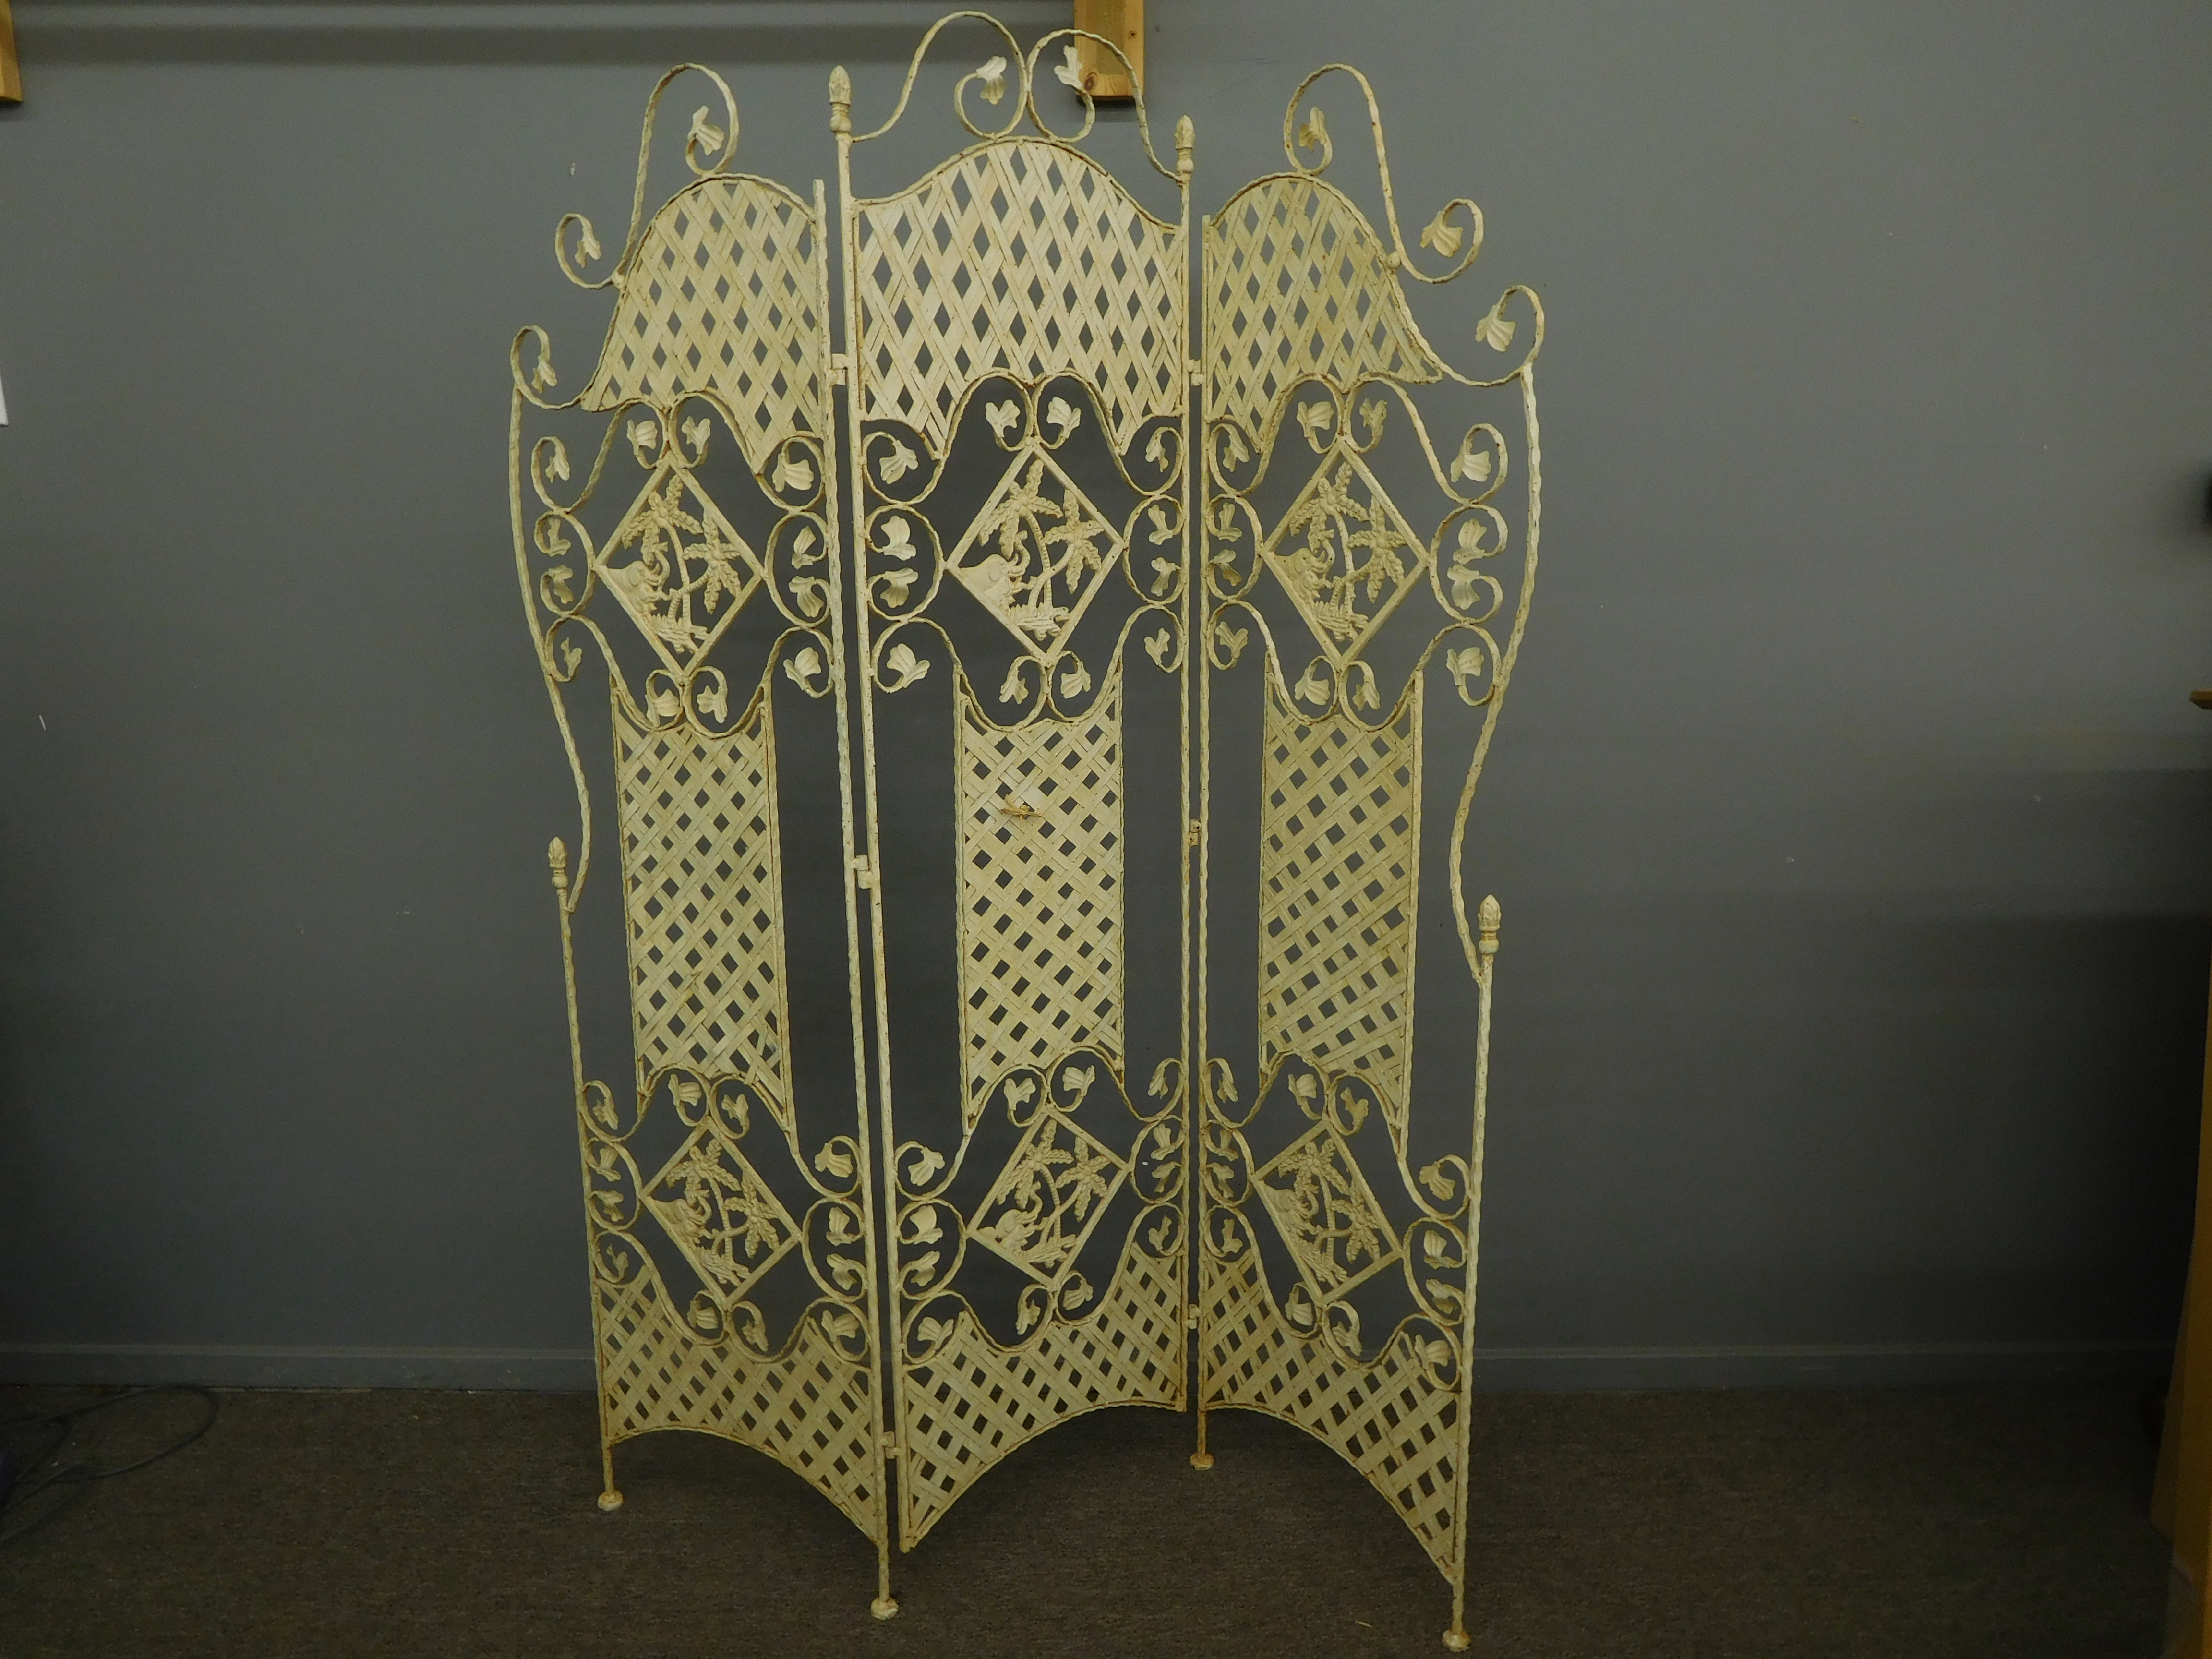 Lacy Wrought Iron Screen/Room Divider, Naturally Distressed